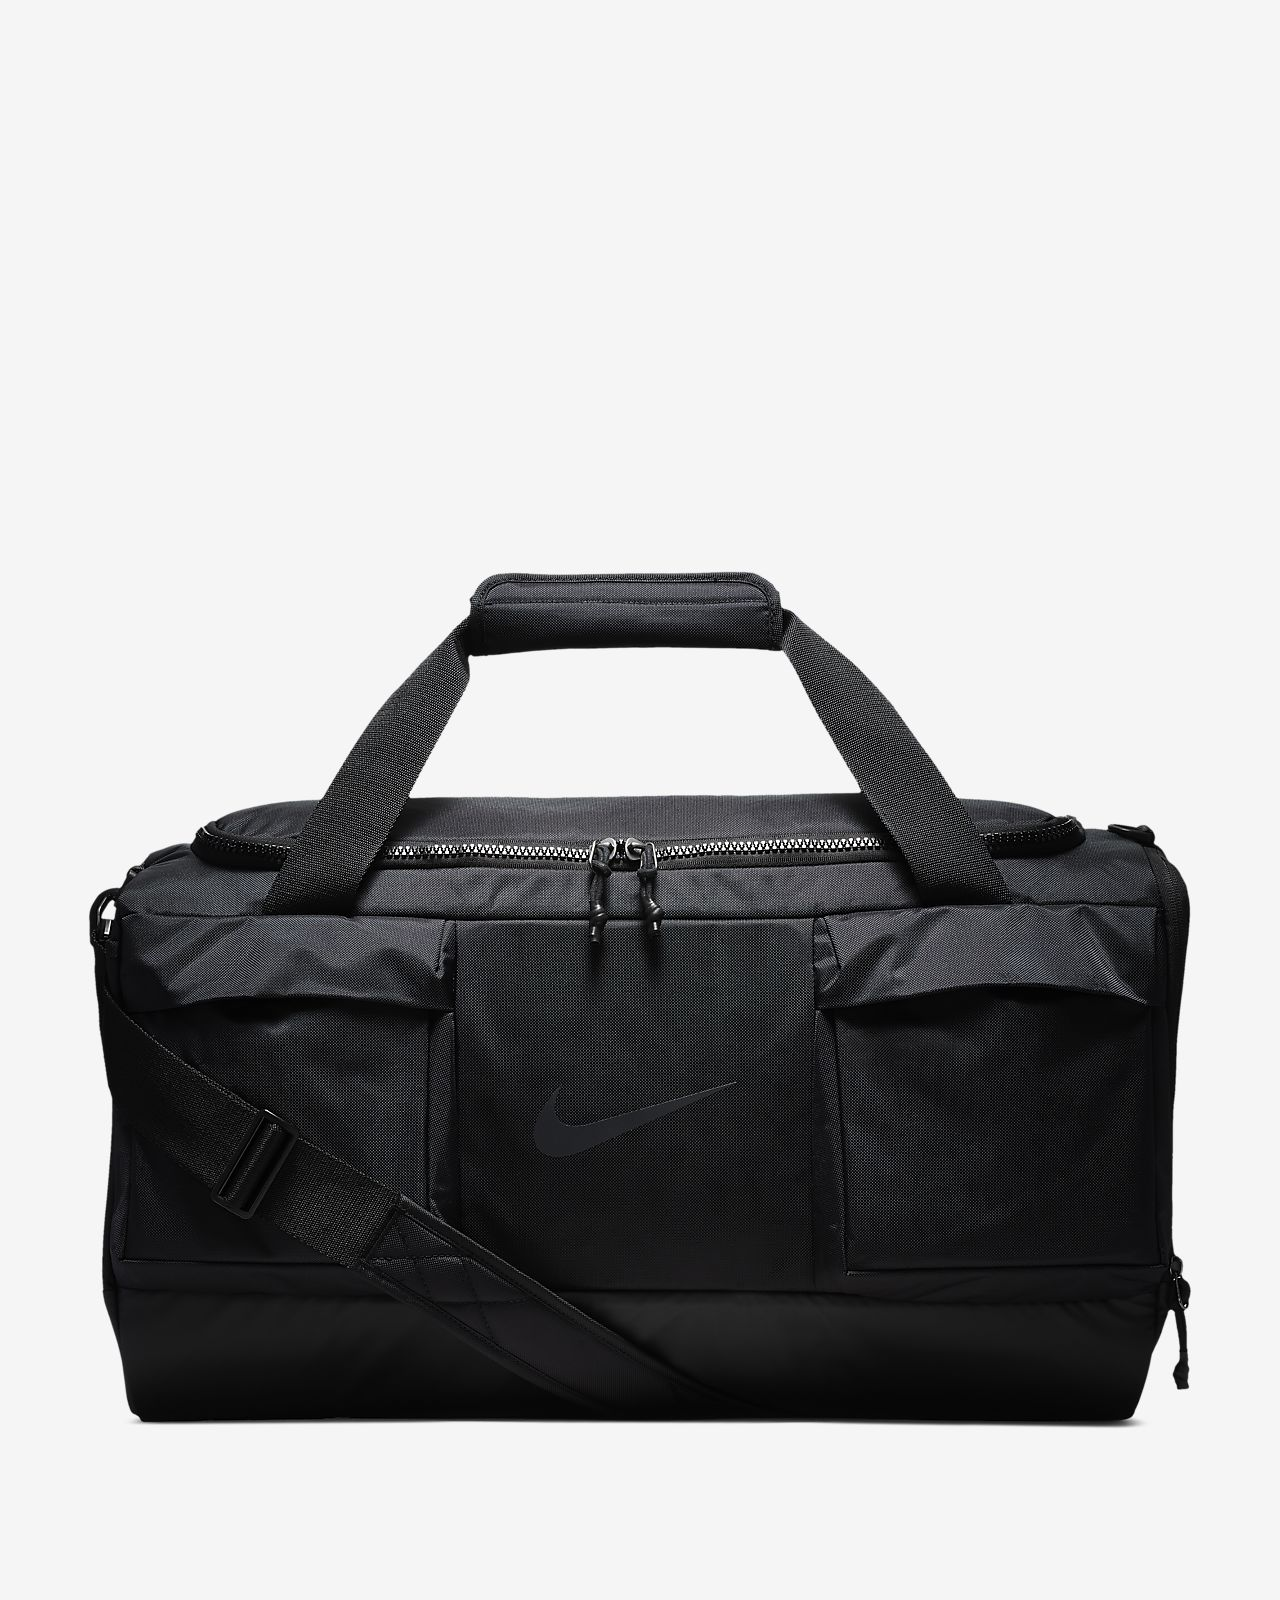 Nike Vapor Men S Training Duffel Bag Medium